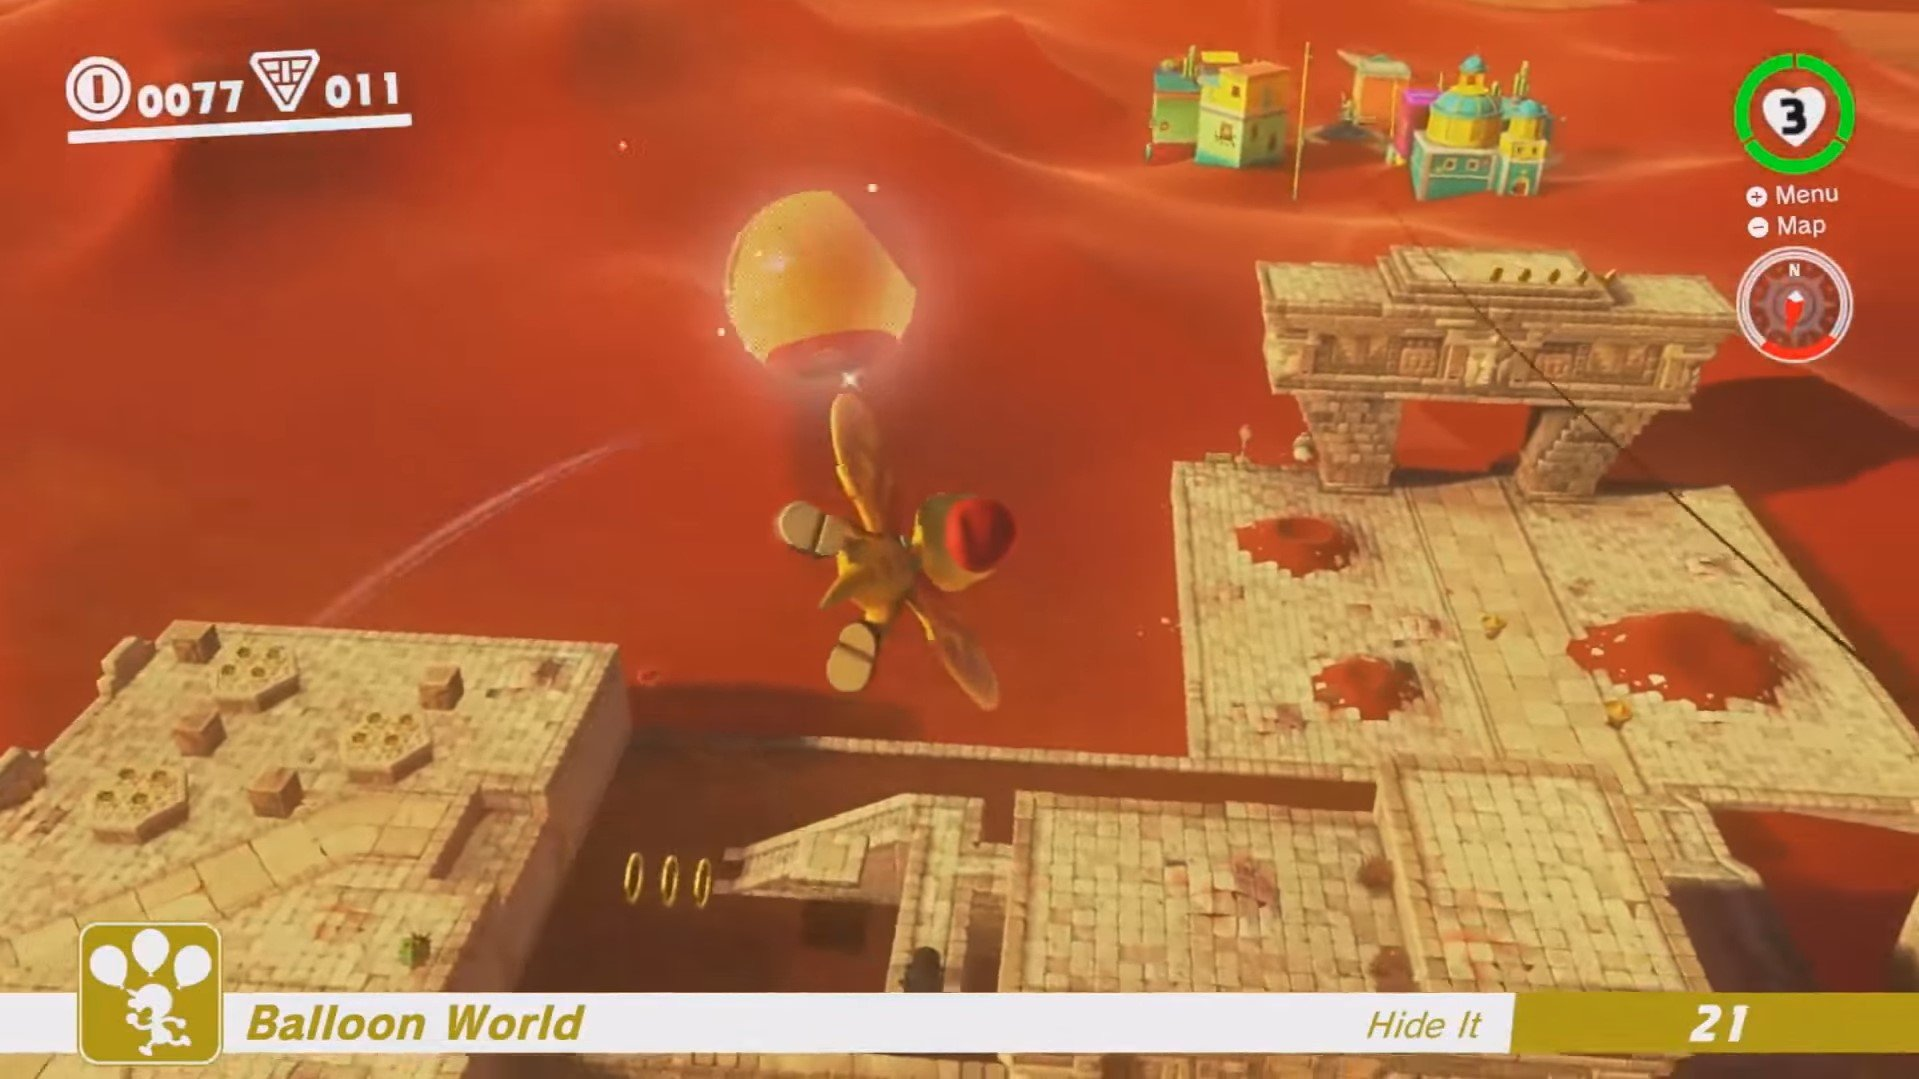 Balloon World is the DLC Super Mario Odyssey needed most